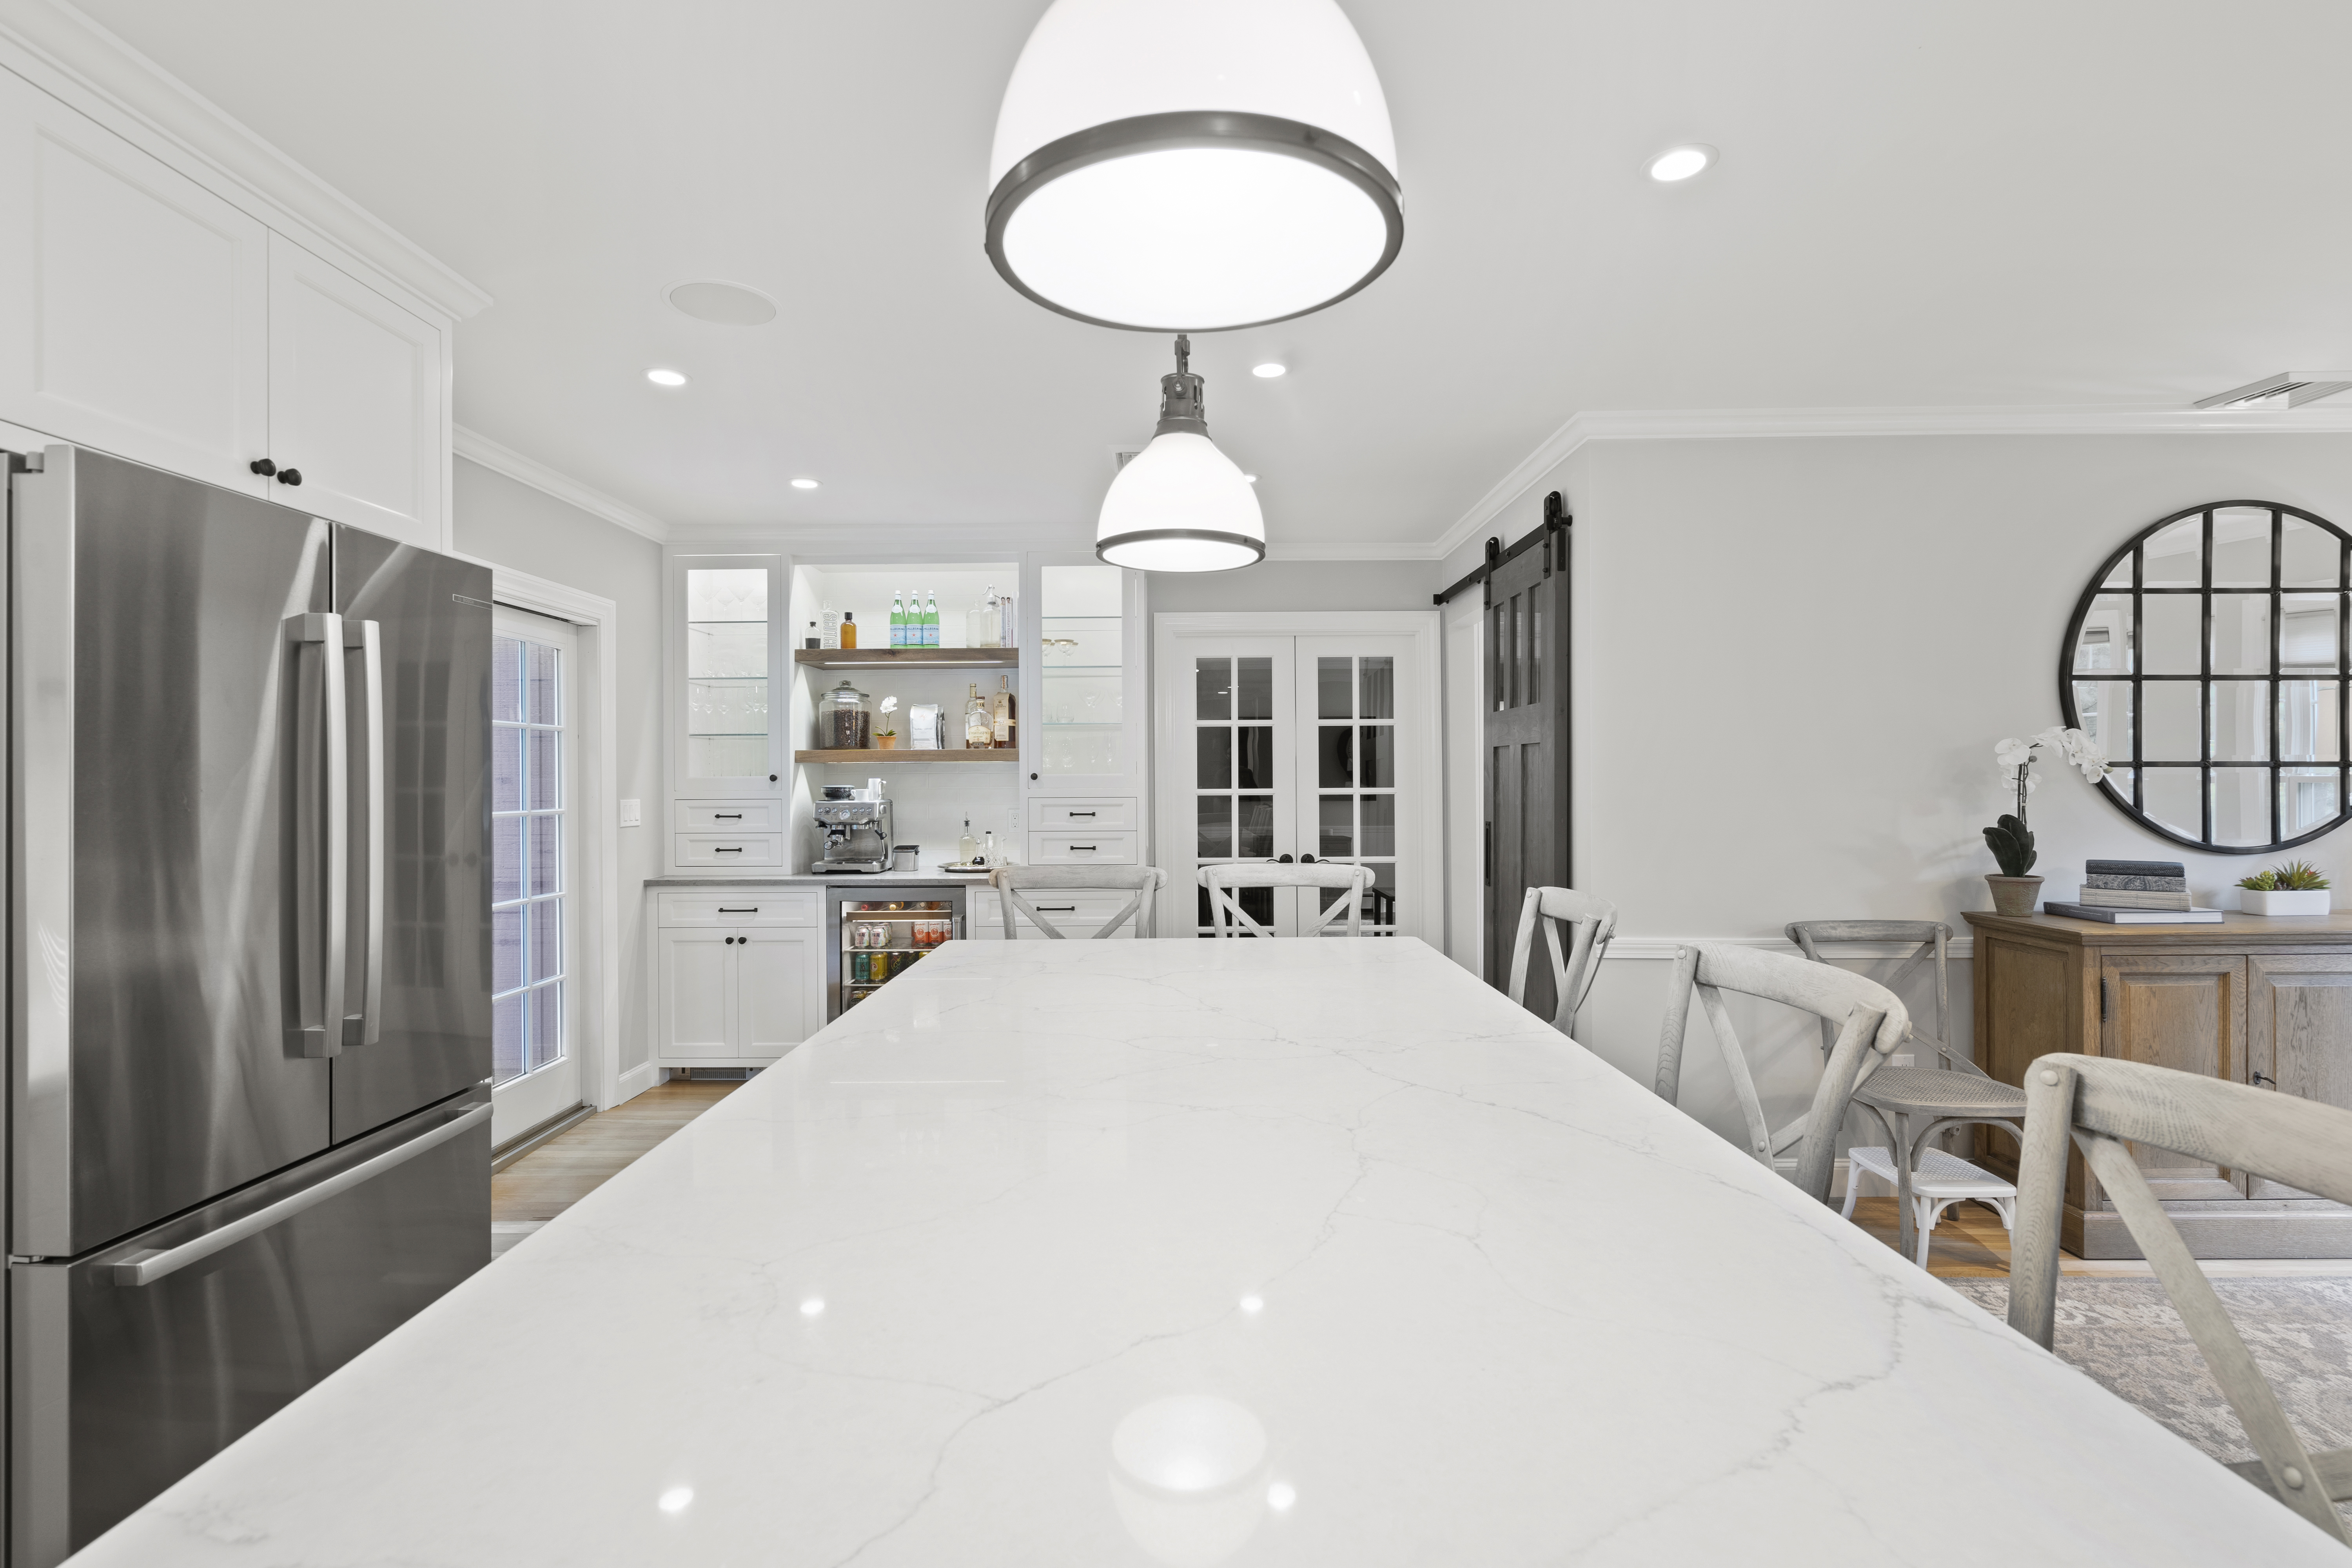 Beautiful custom kitchen high-end editing real estate photography